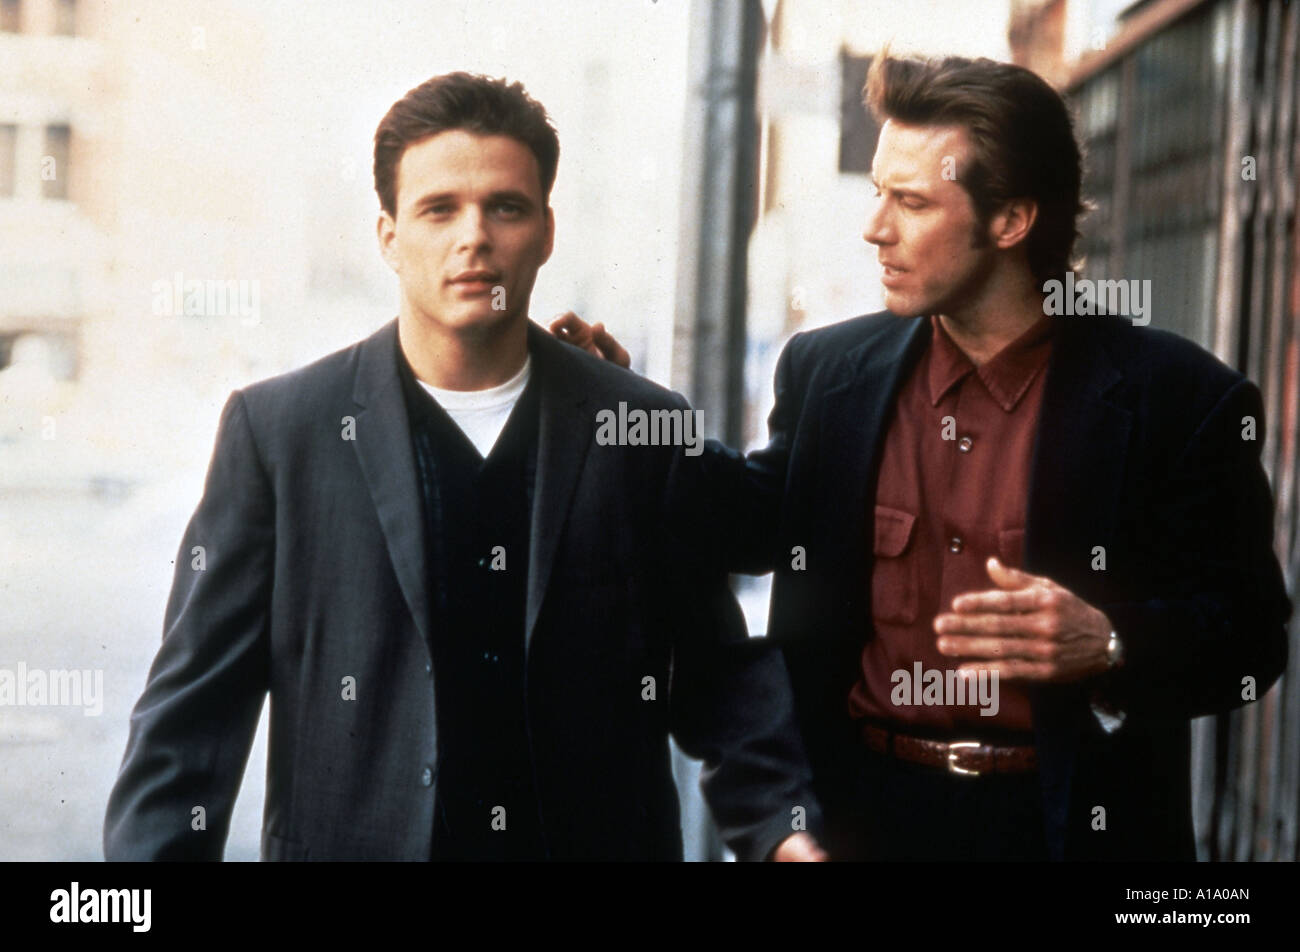 Damian Chapa blood in blood out